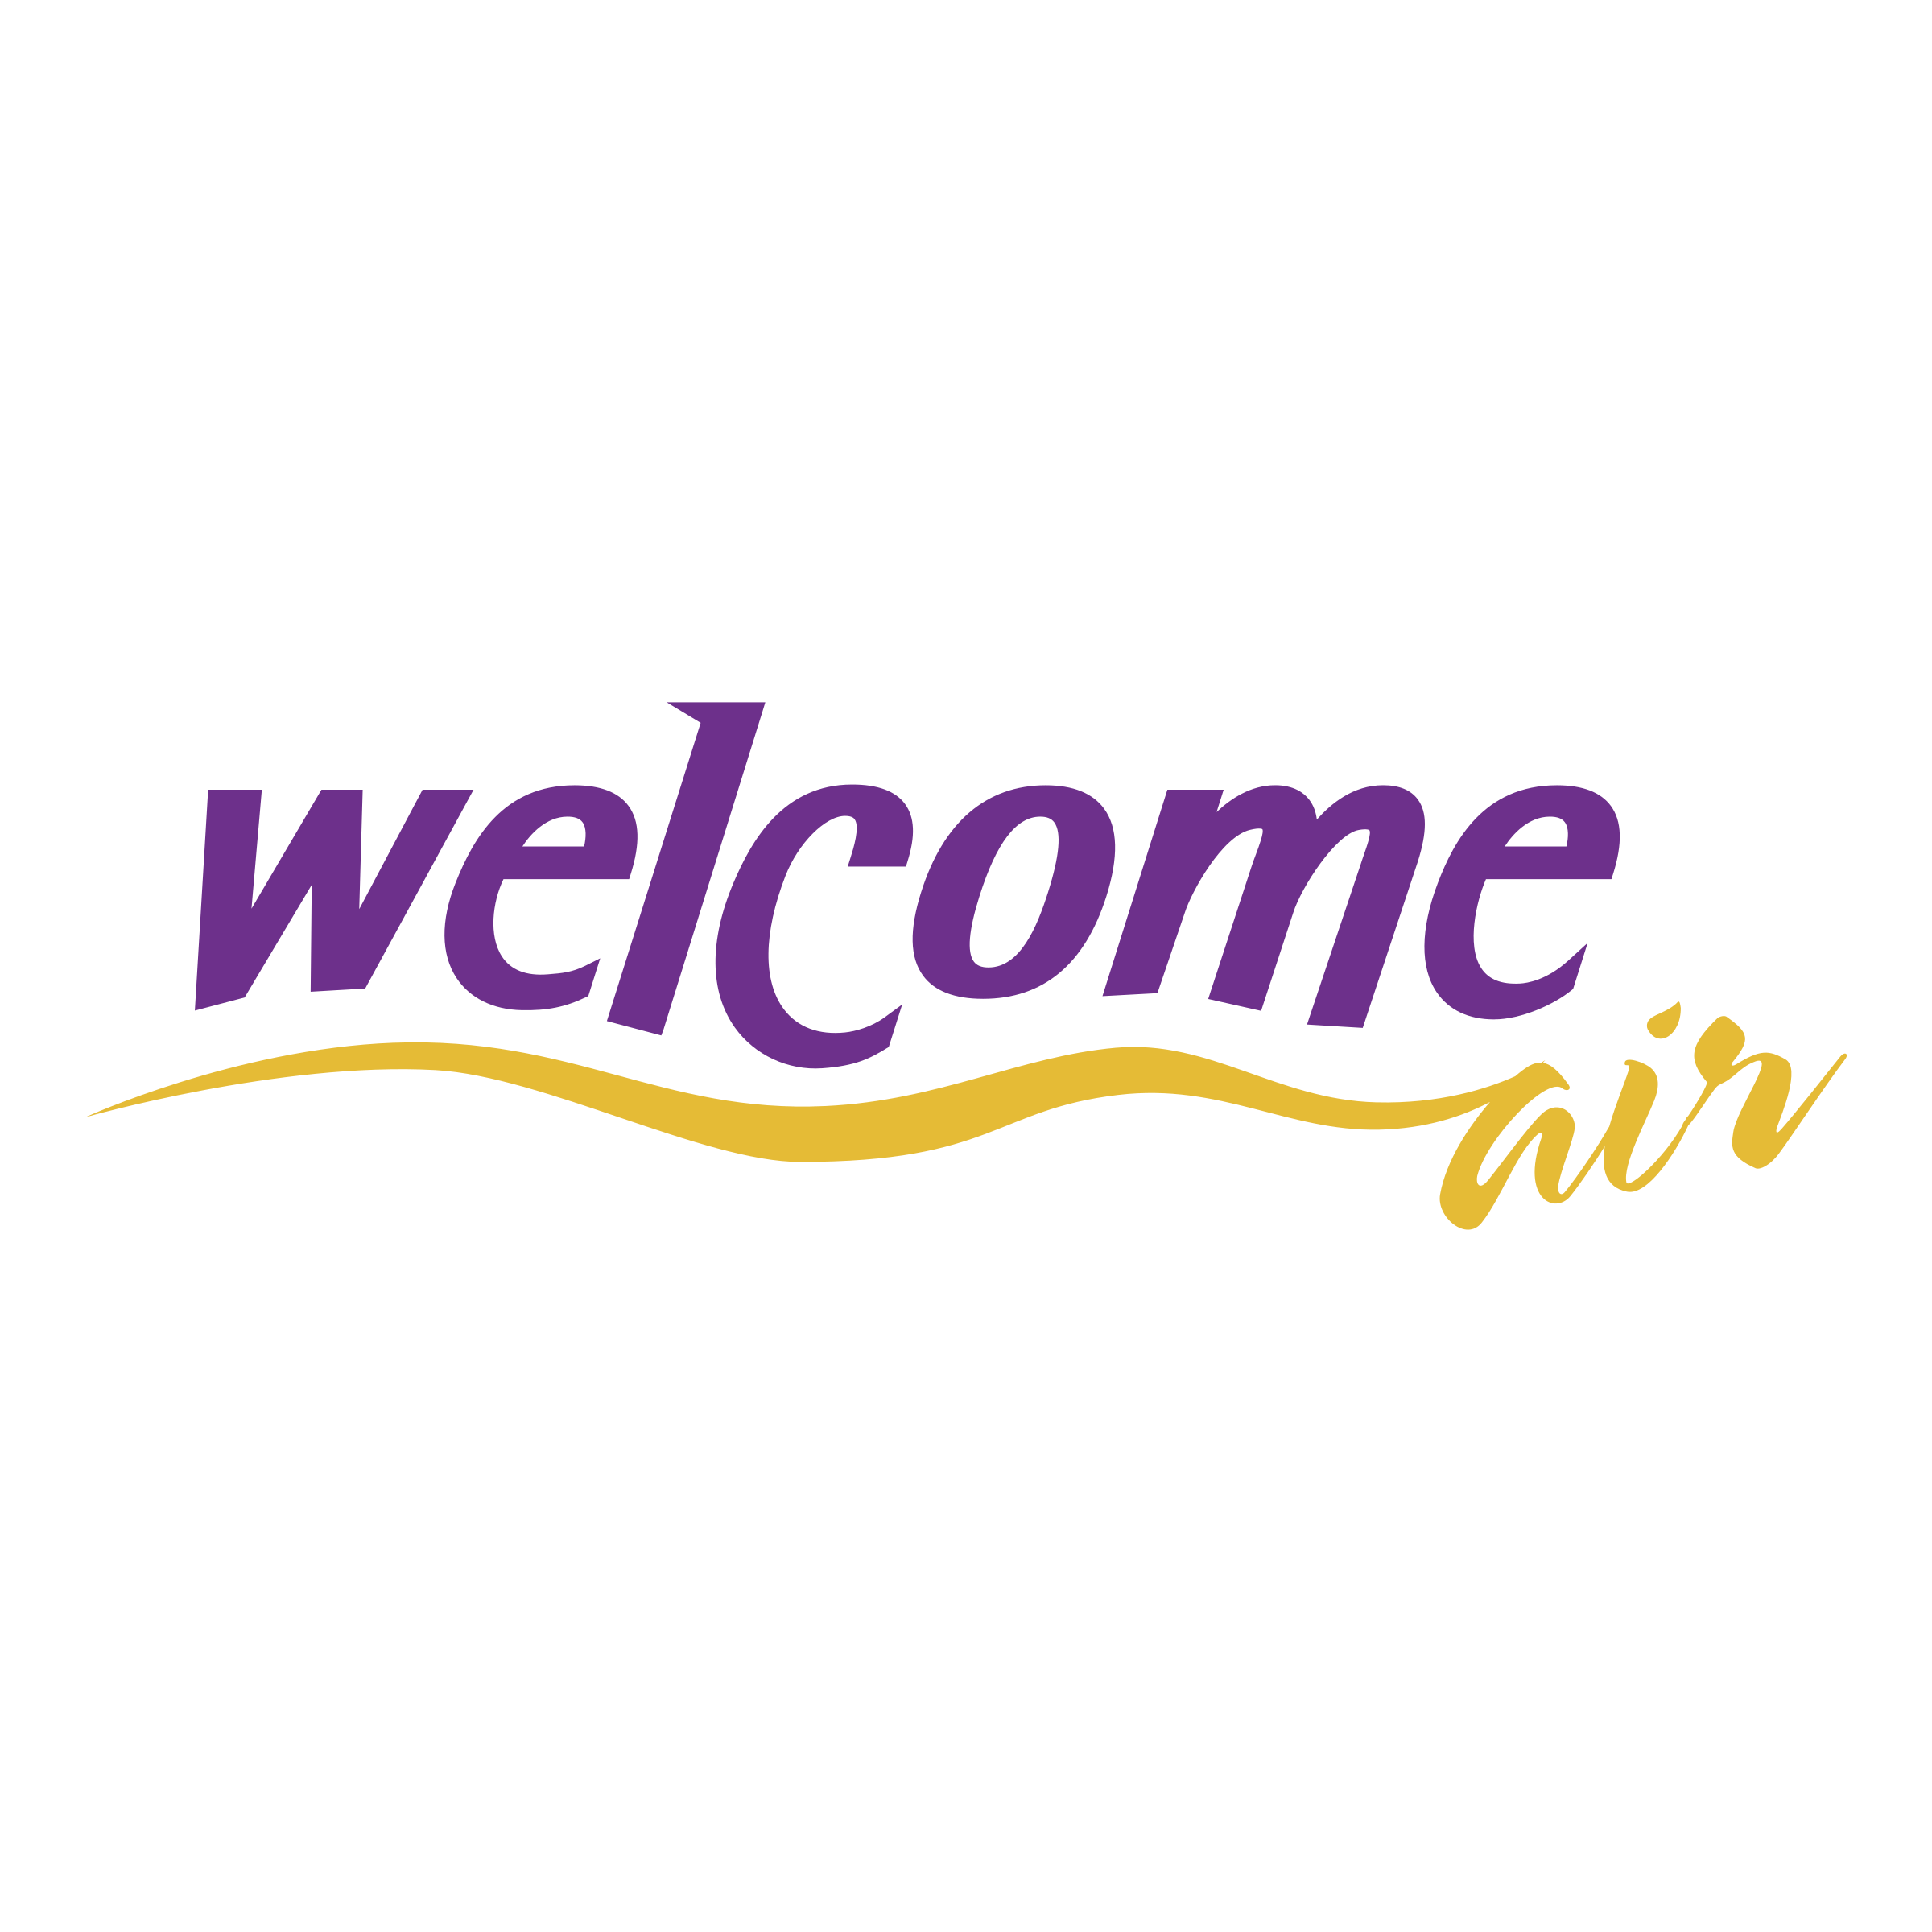 Welcome Air Logo PNG Transparent & SVG Vector.